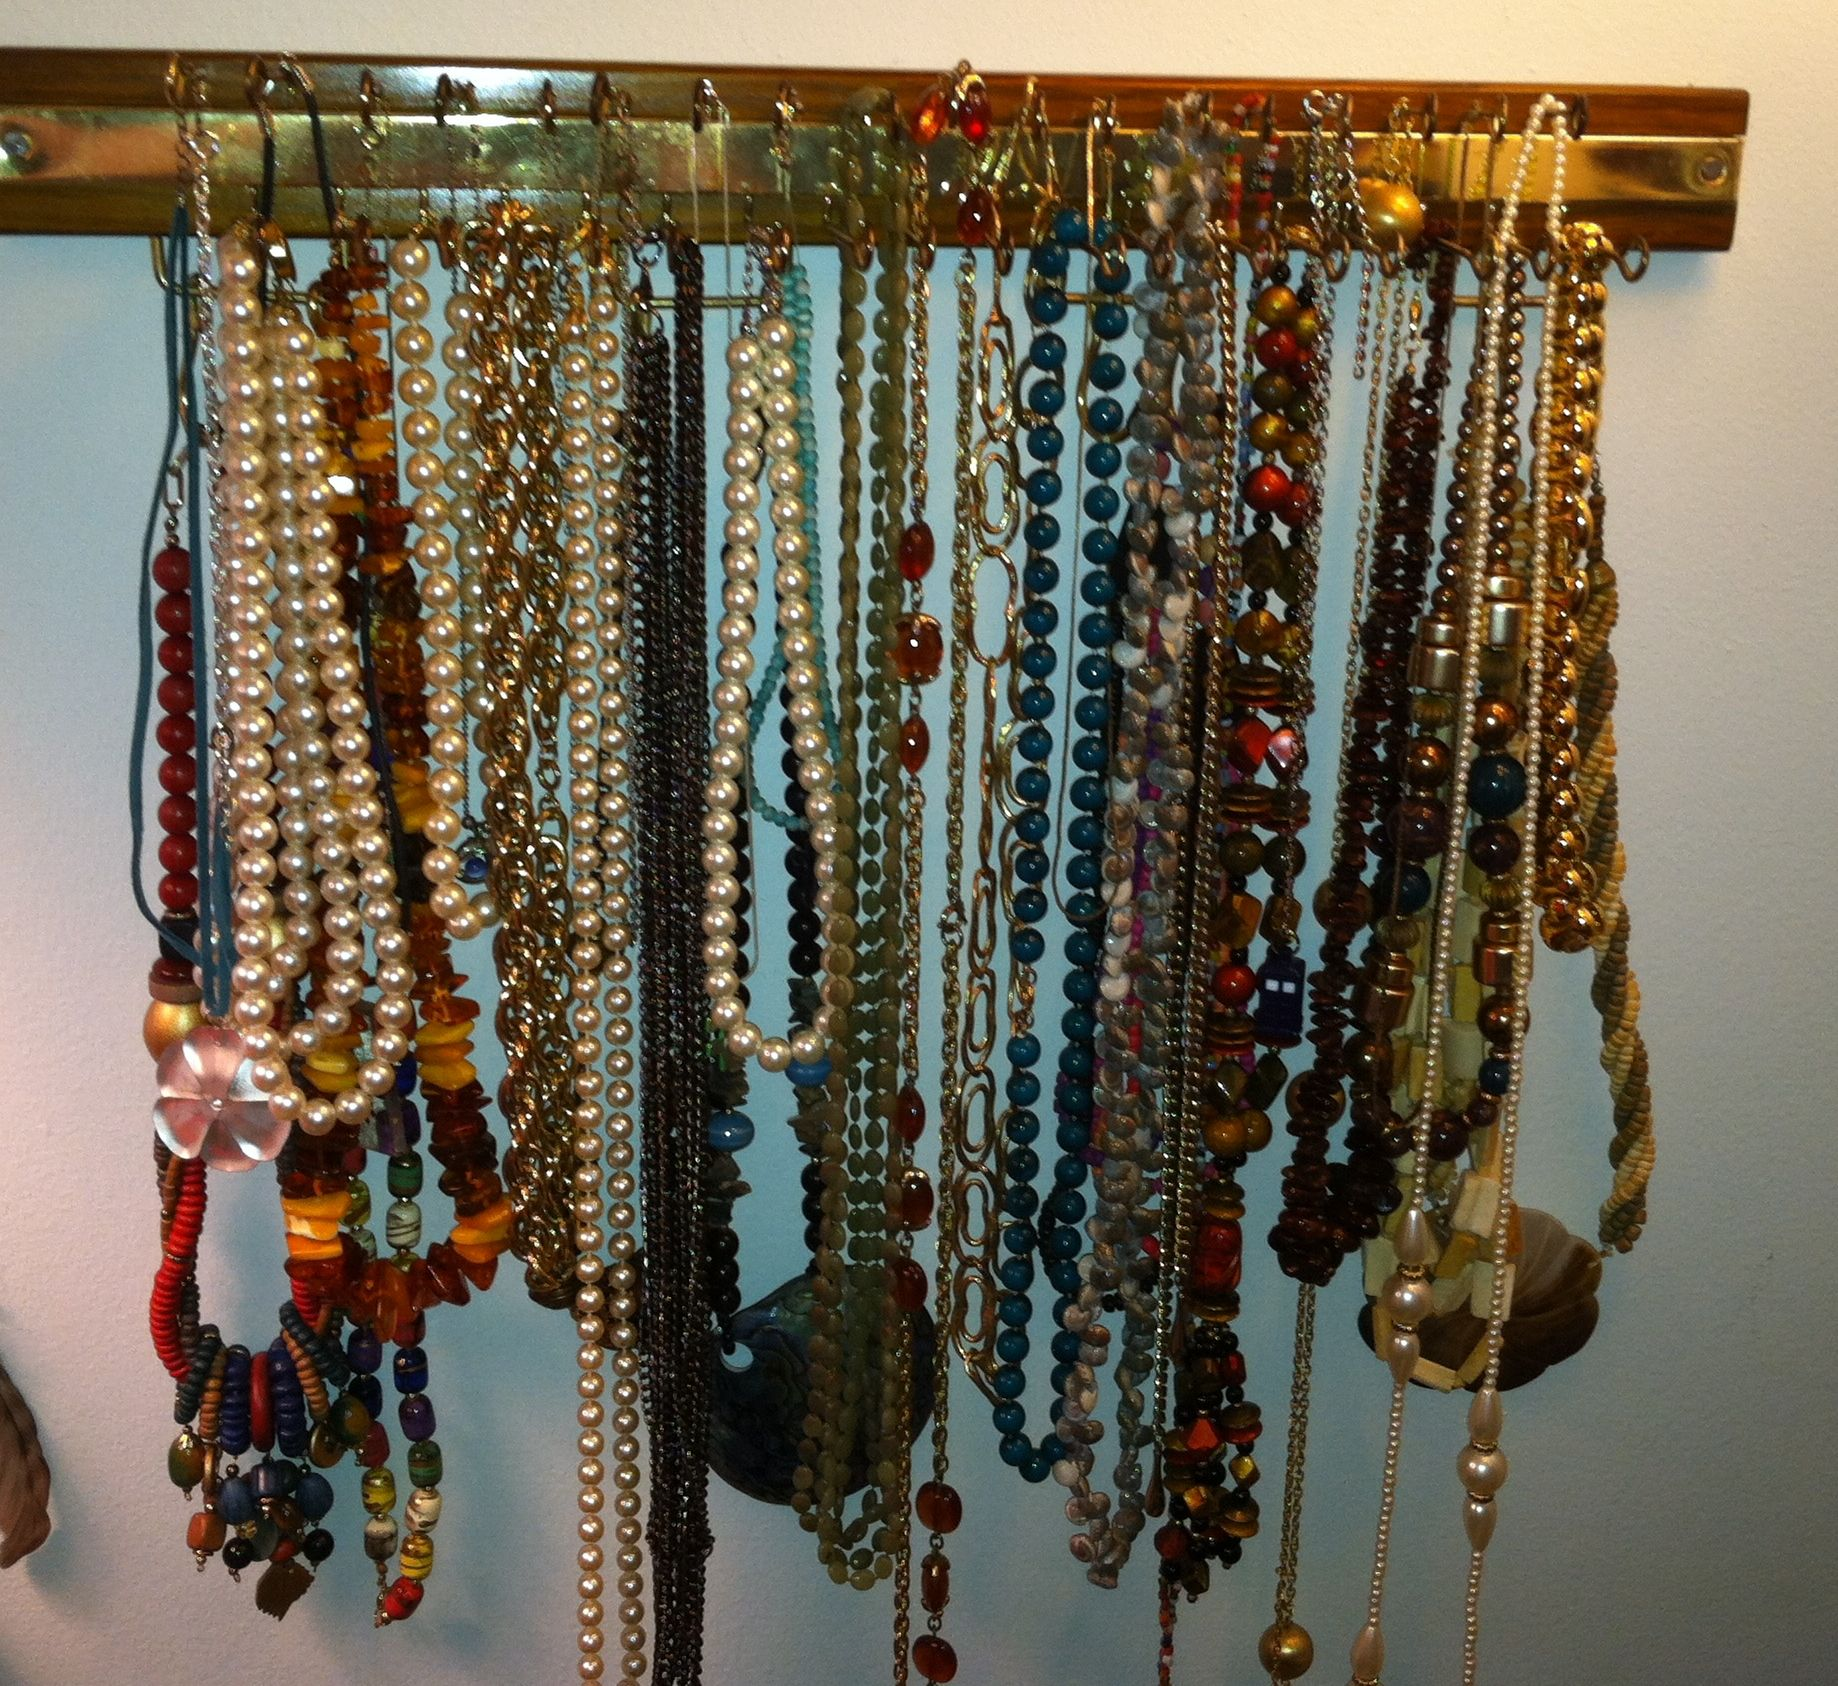 #DIY #Necklaces #Repurpose #Recycle #Jewelry #Creative #Holder #TieRack Just take an old tie rack and hang your necklaces from it. It helps organize them, and keeps them from tangling.